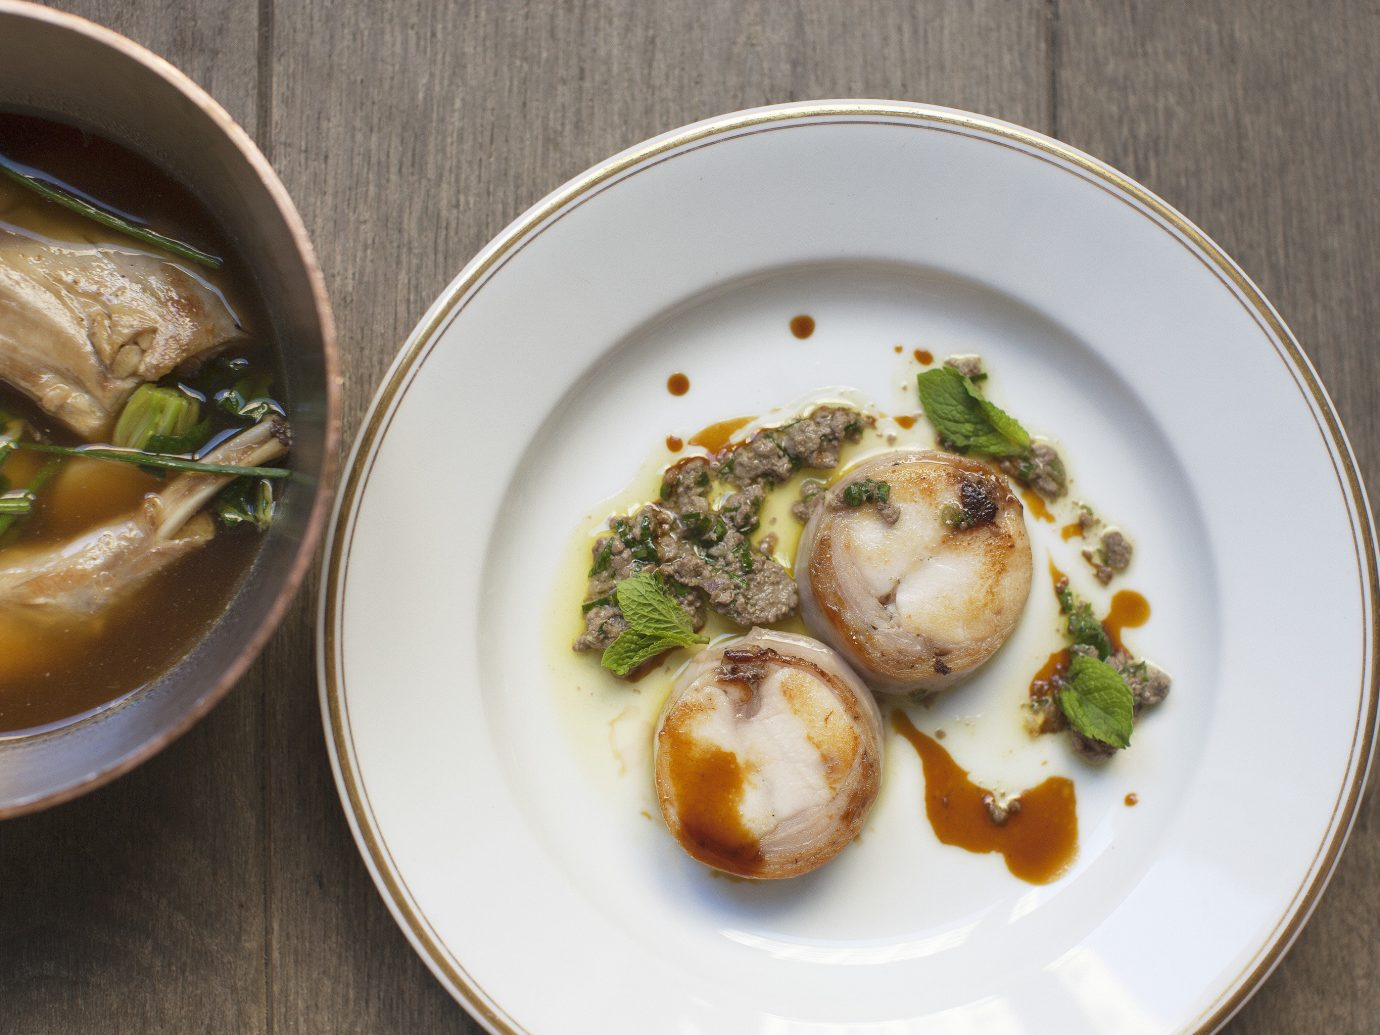 Dishes from Le Coucou in NYC